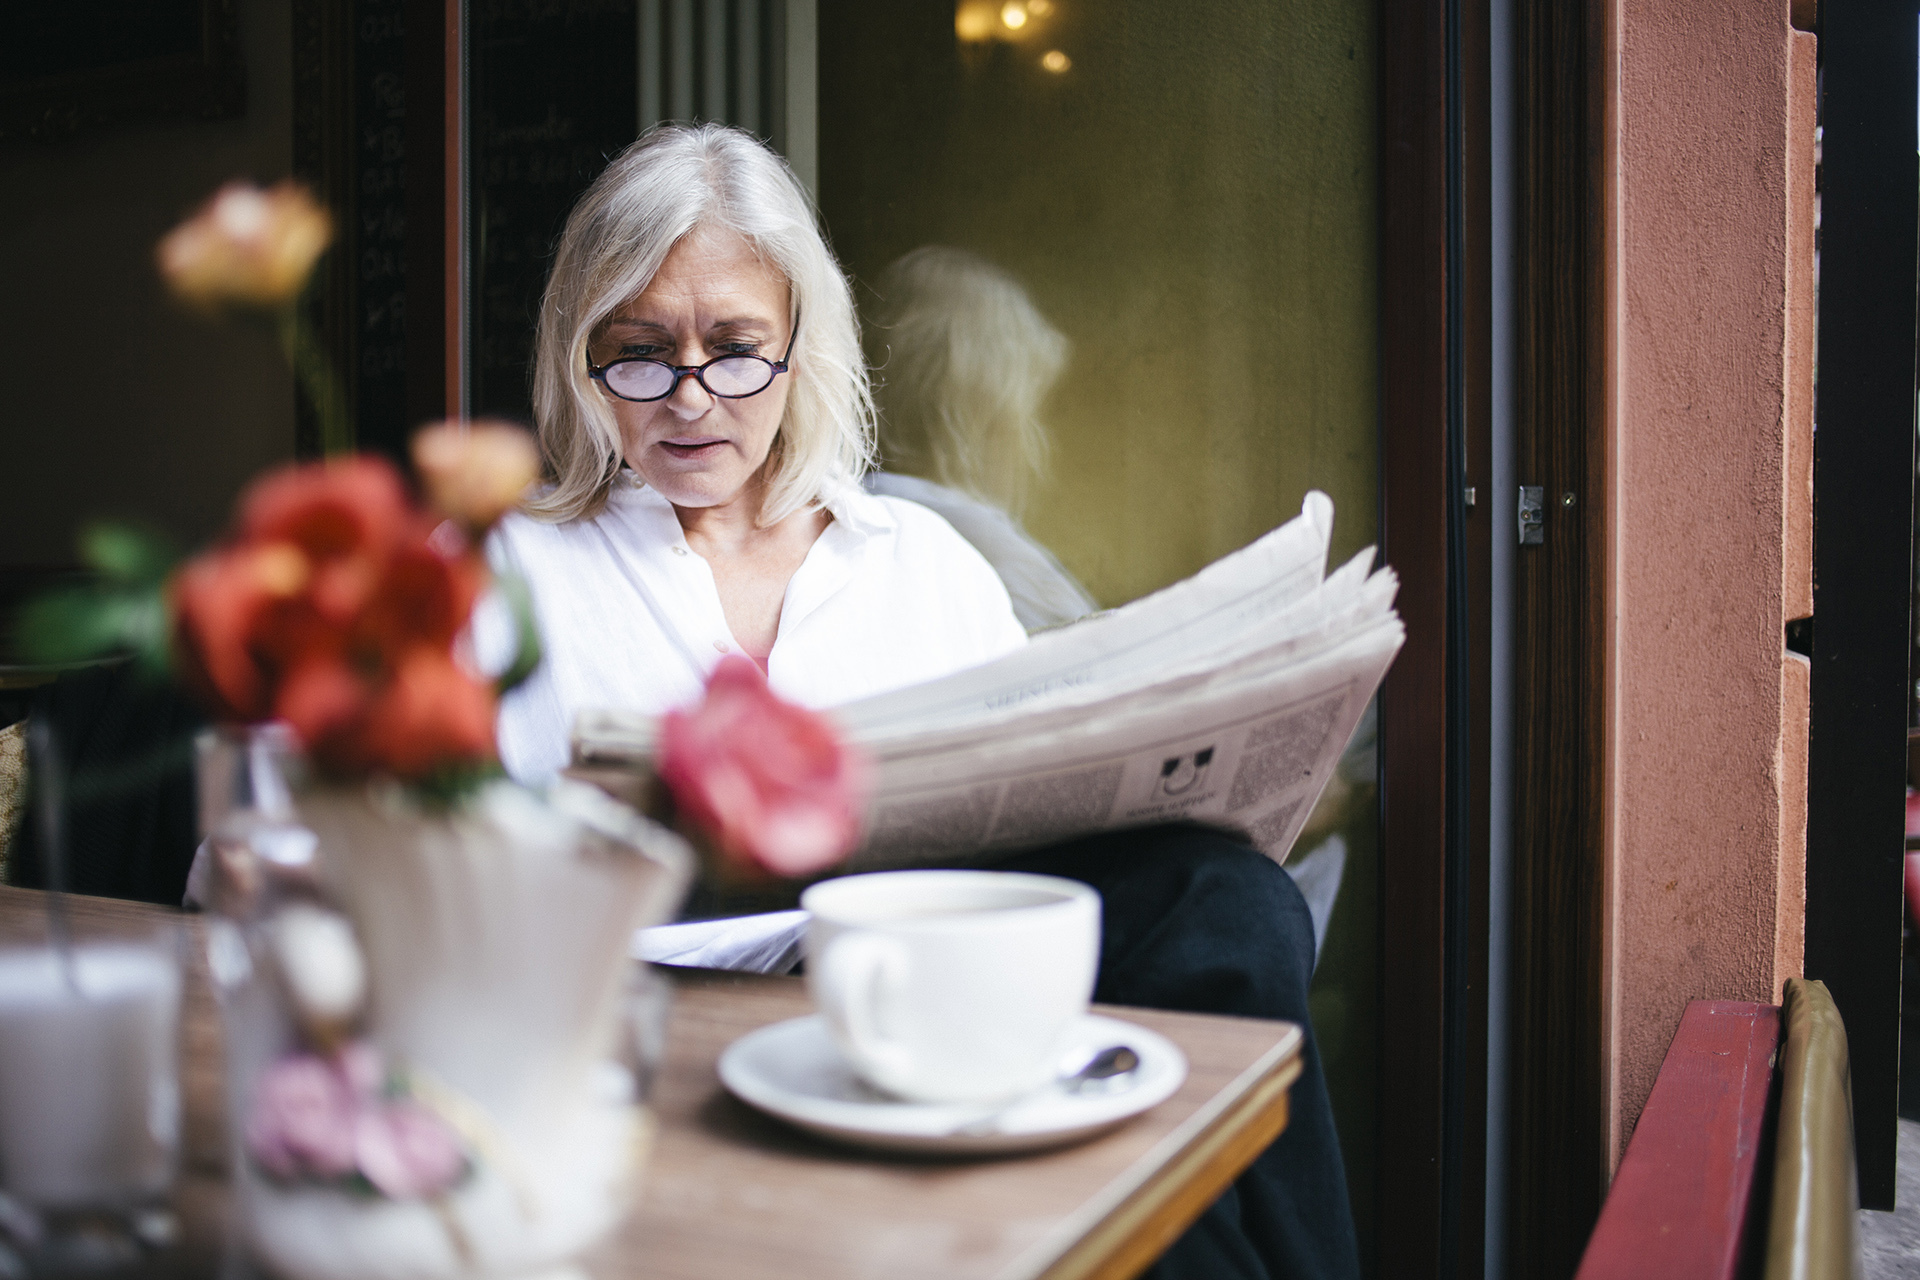 senior woman sits in a Sidewalk Cafe at an open window and reads a newspaper